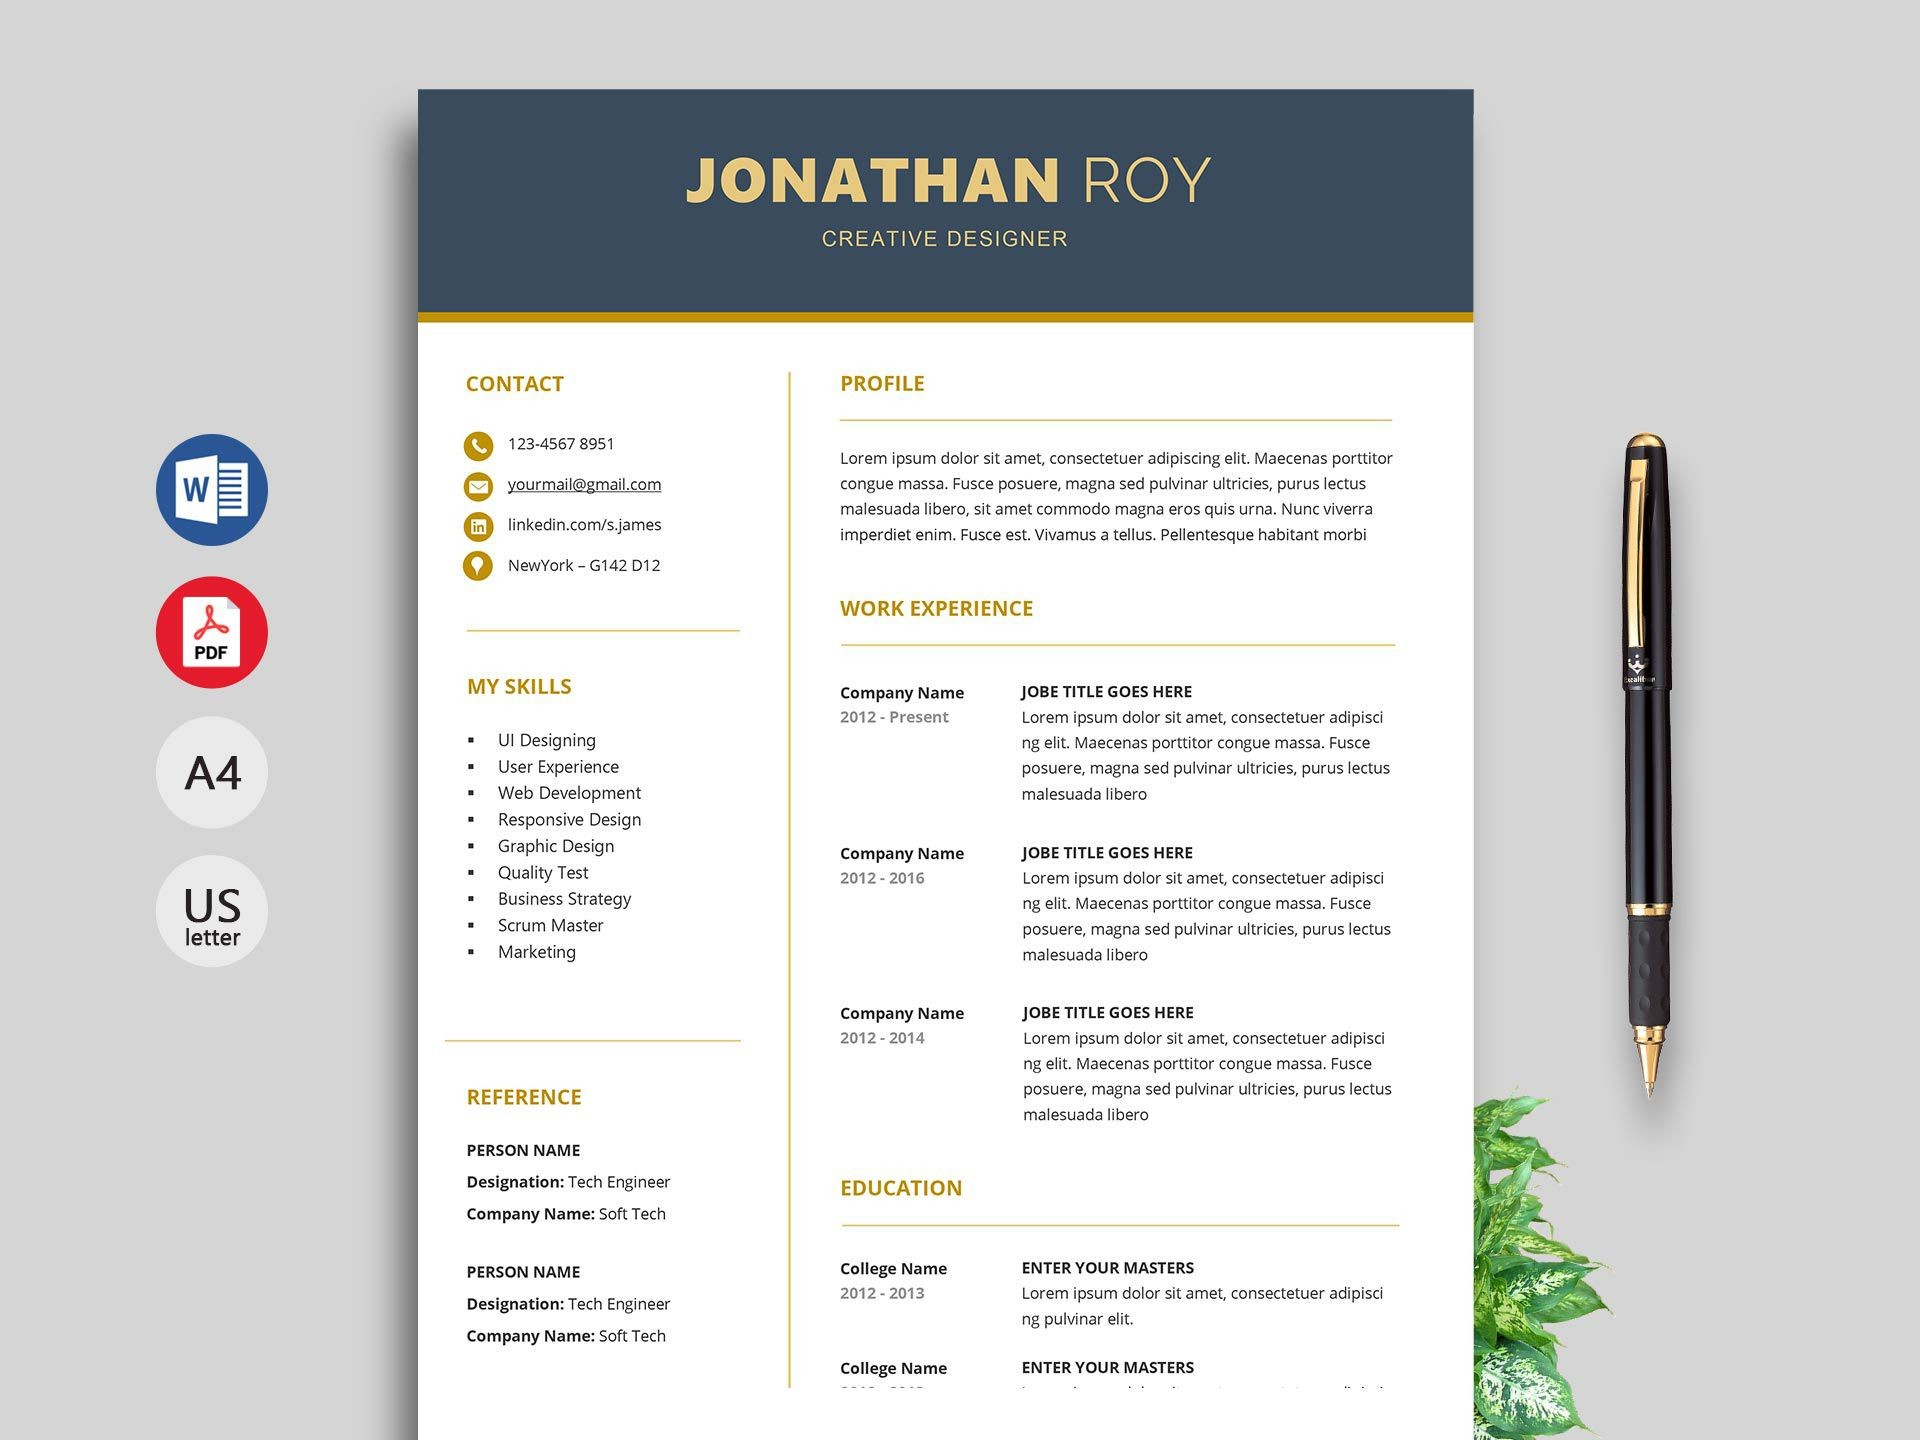 006 Marvelou Resume Template On Word Picture  2007 Download 2016 How To Get 20101920